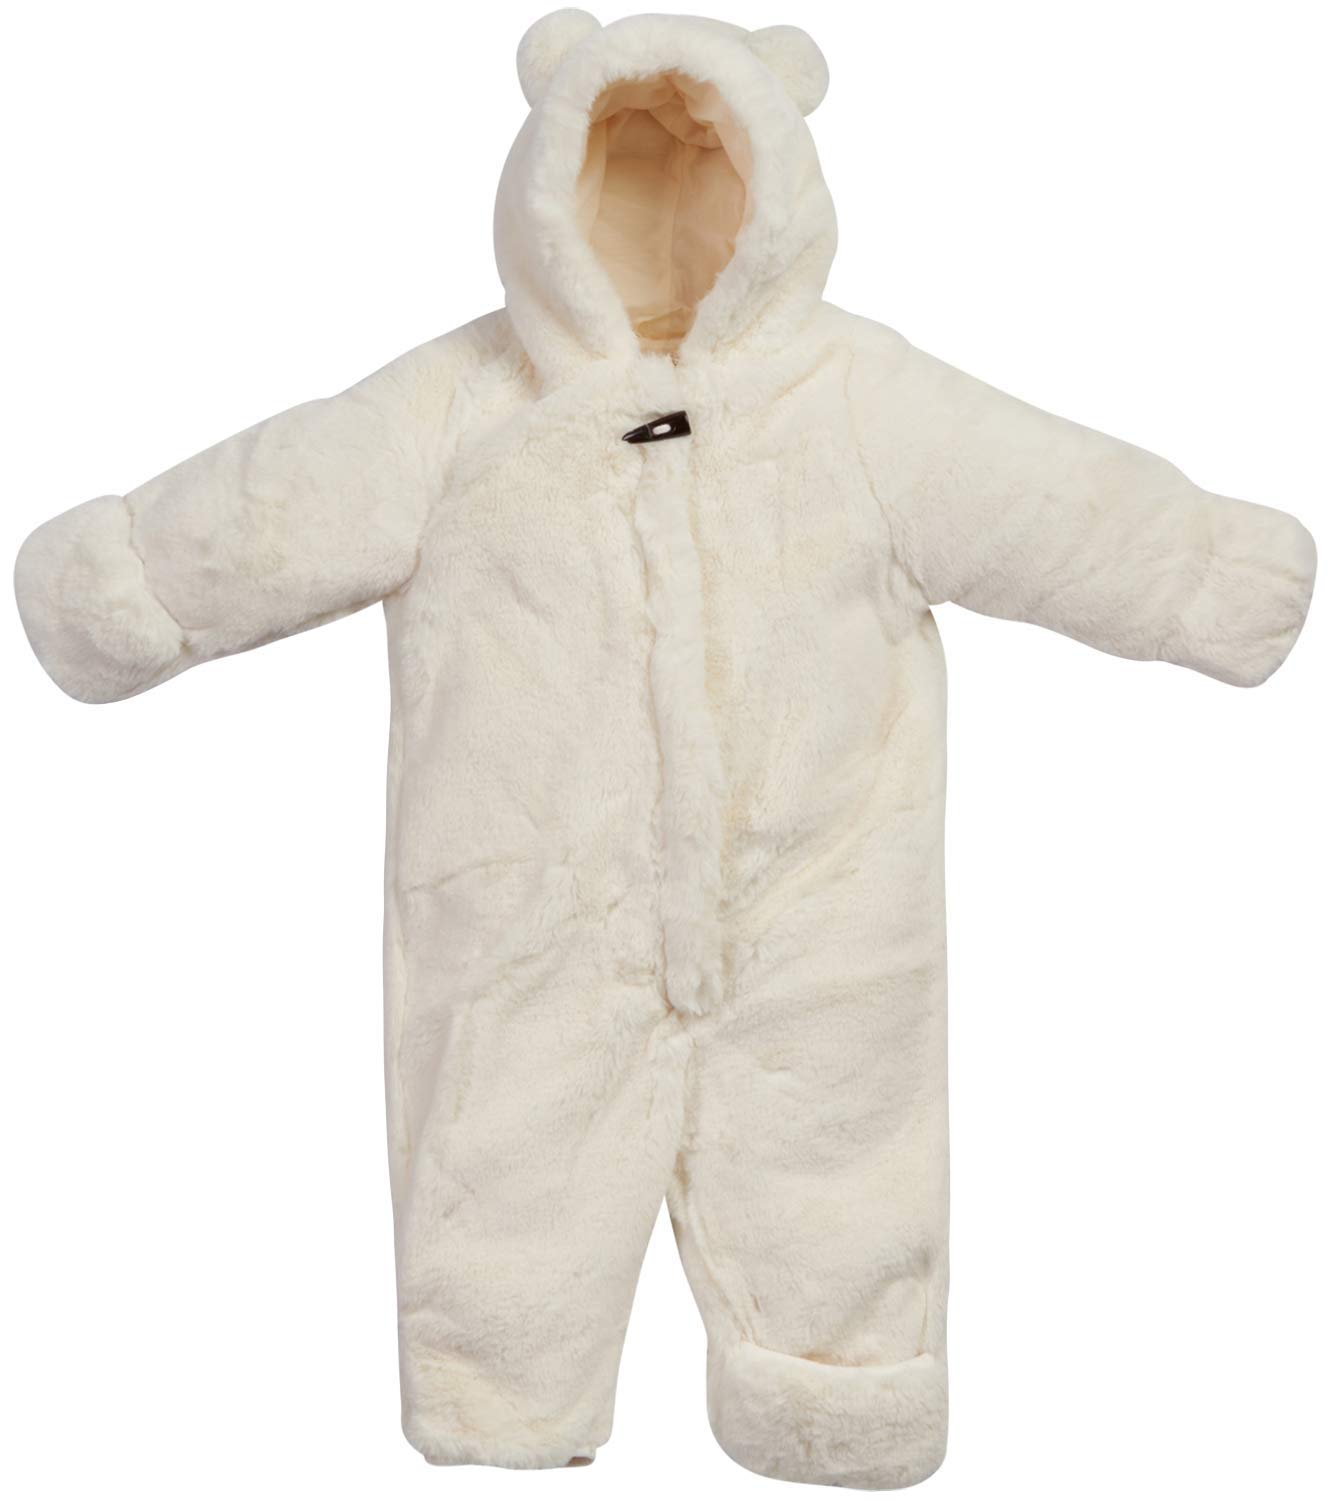 Jessica Simpson Baby Girls Warm and Fluffy Faux Fur Pram with Character Hood (Infant and Toddler), Size 6-9 Months, Ivory' by Jessica Simpson